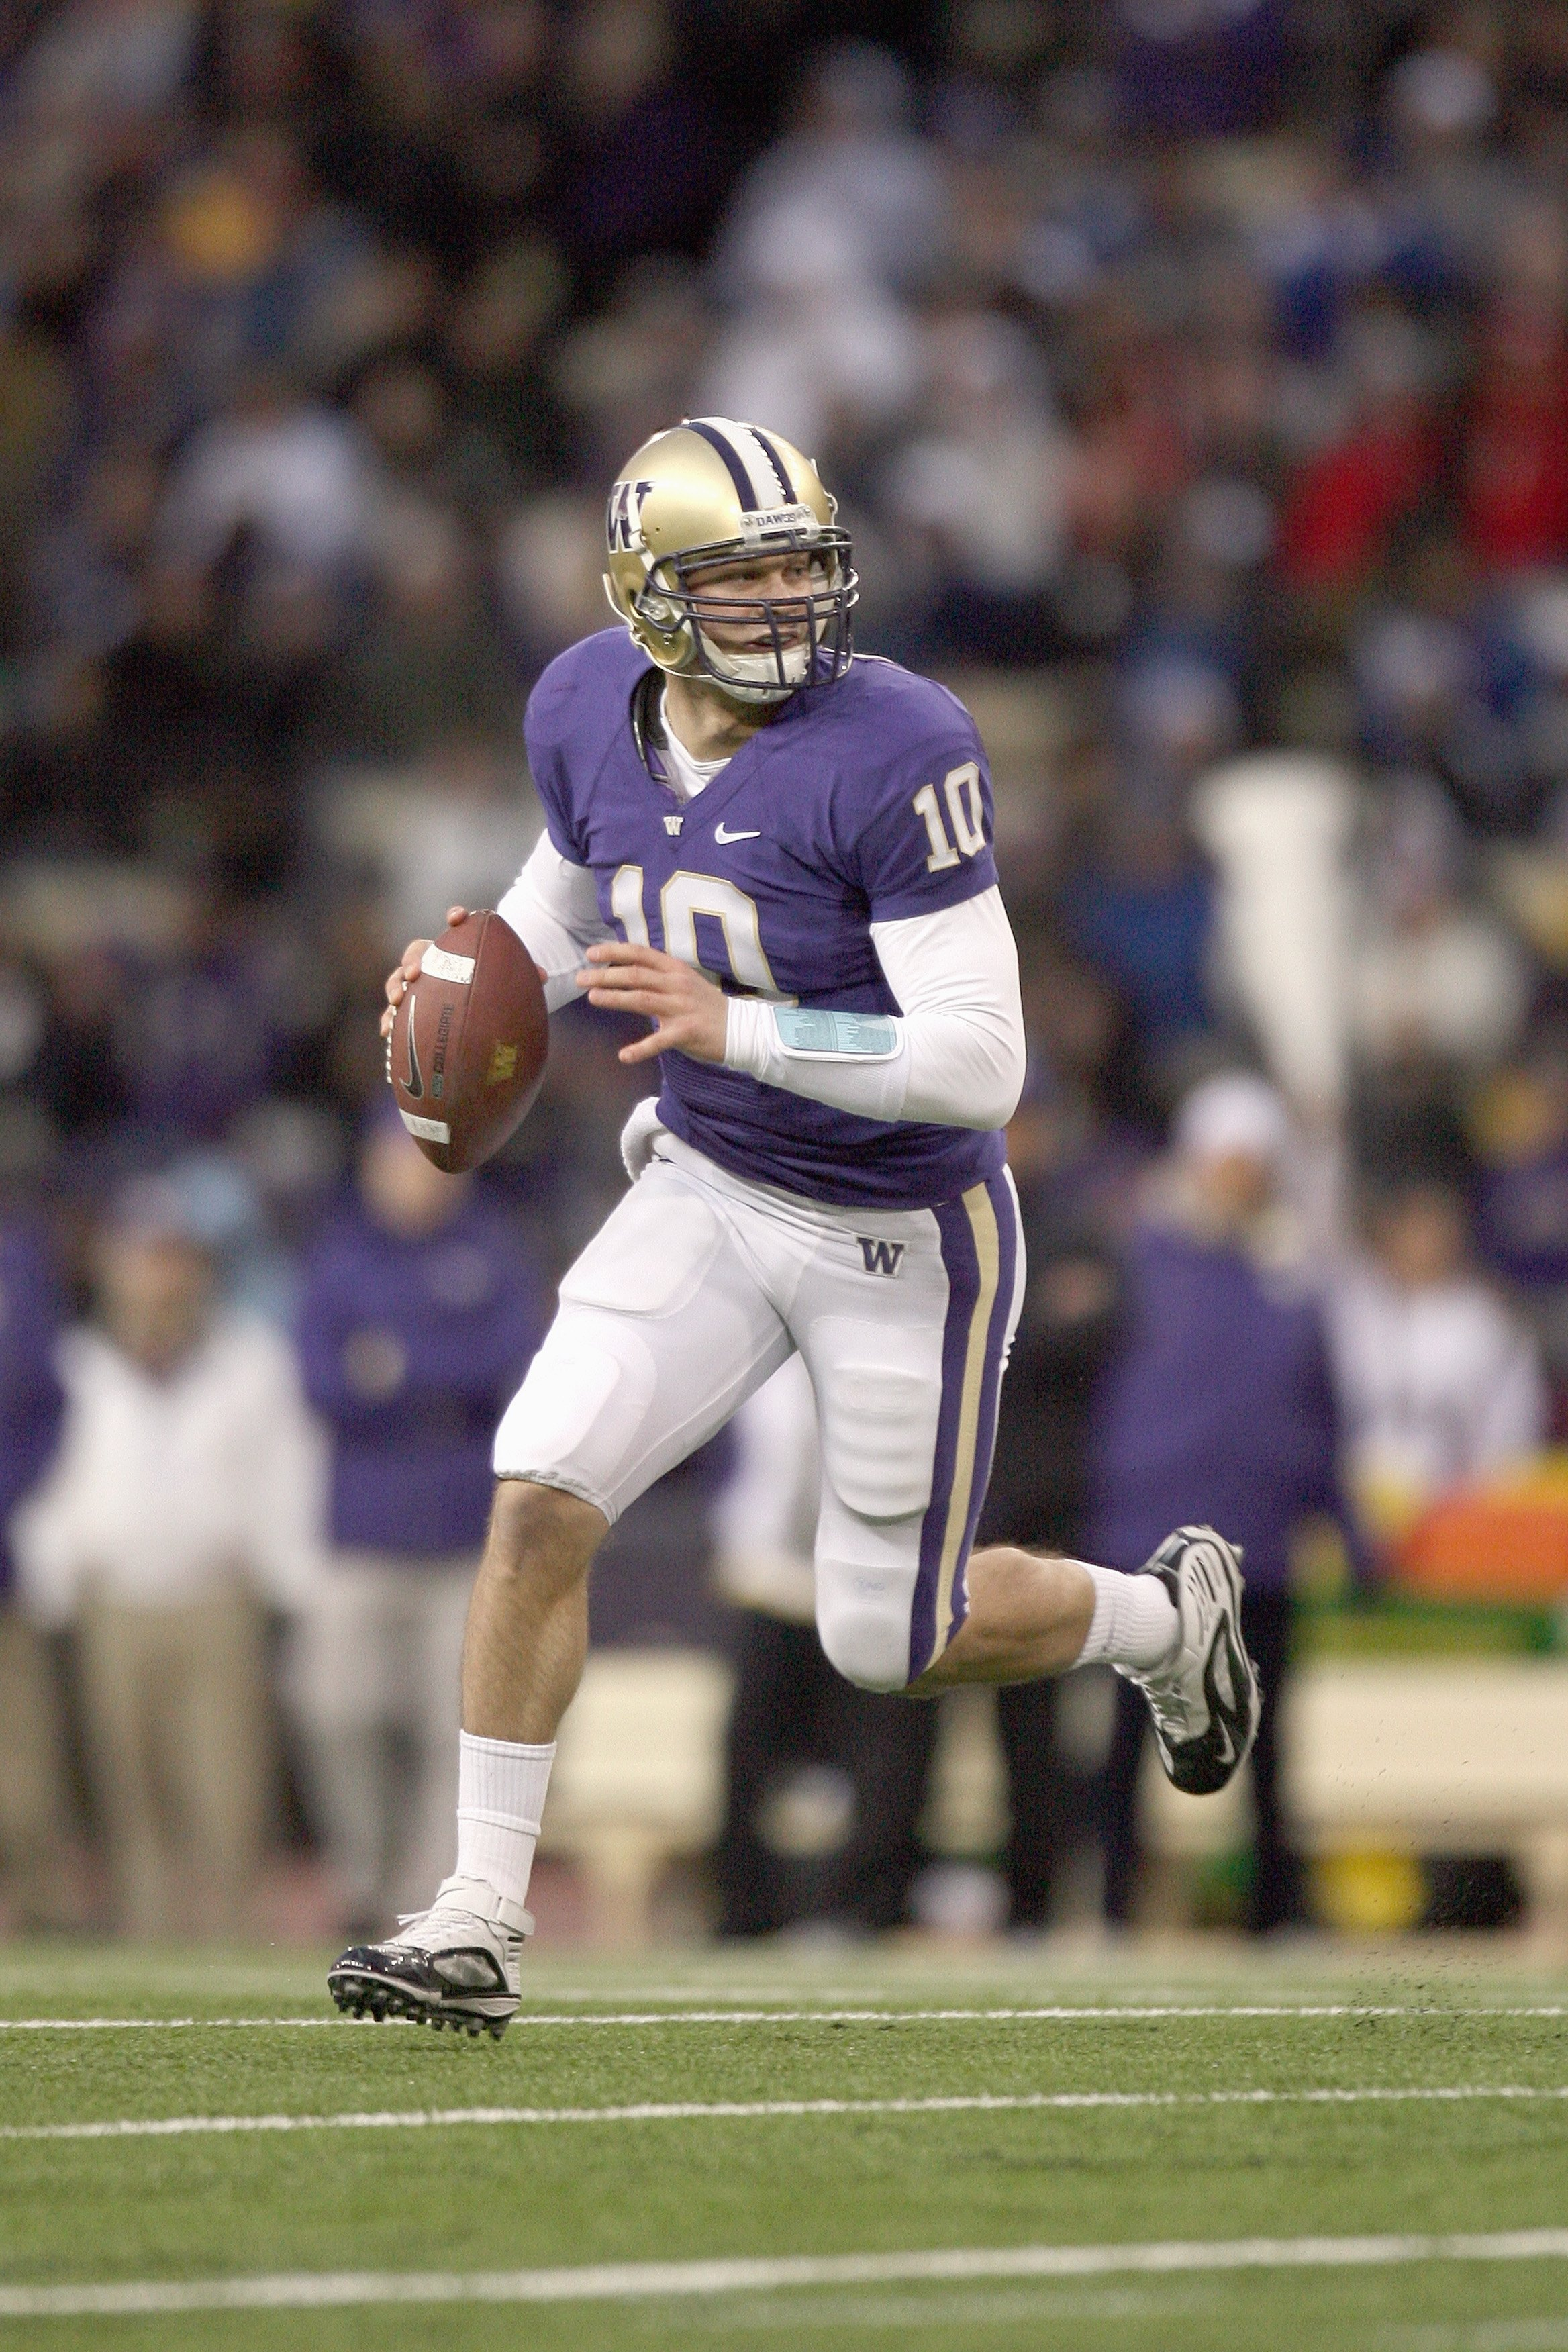 SEATTLE - DECEMBER 05: Quarterback Jake Locker #10 of the Washington Huskies moves to pass the ball during game against the California Bears on December 5, 2009 at Husky Stadium in Seattle, Washington. The Huskies defeated the Bears 42-10. (Photo by Otto